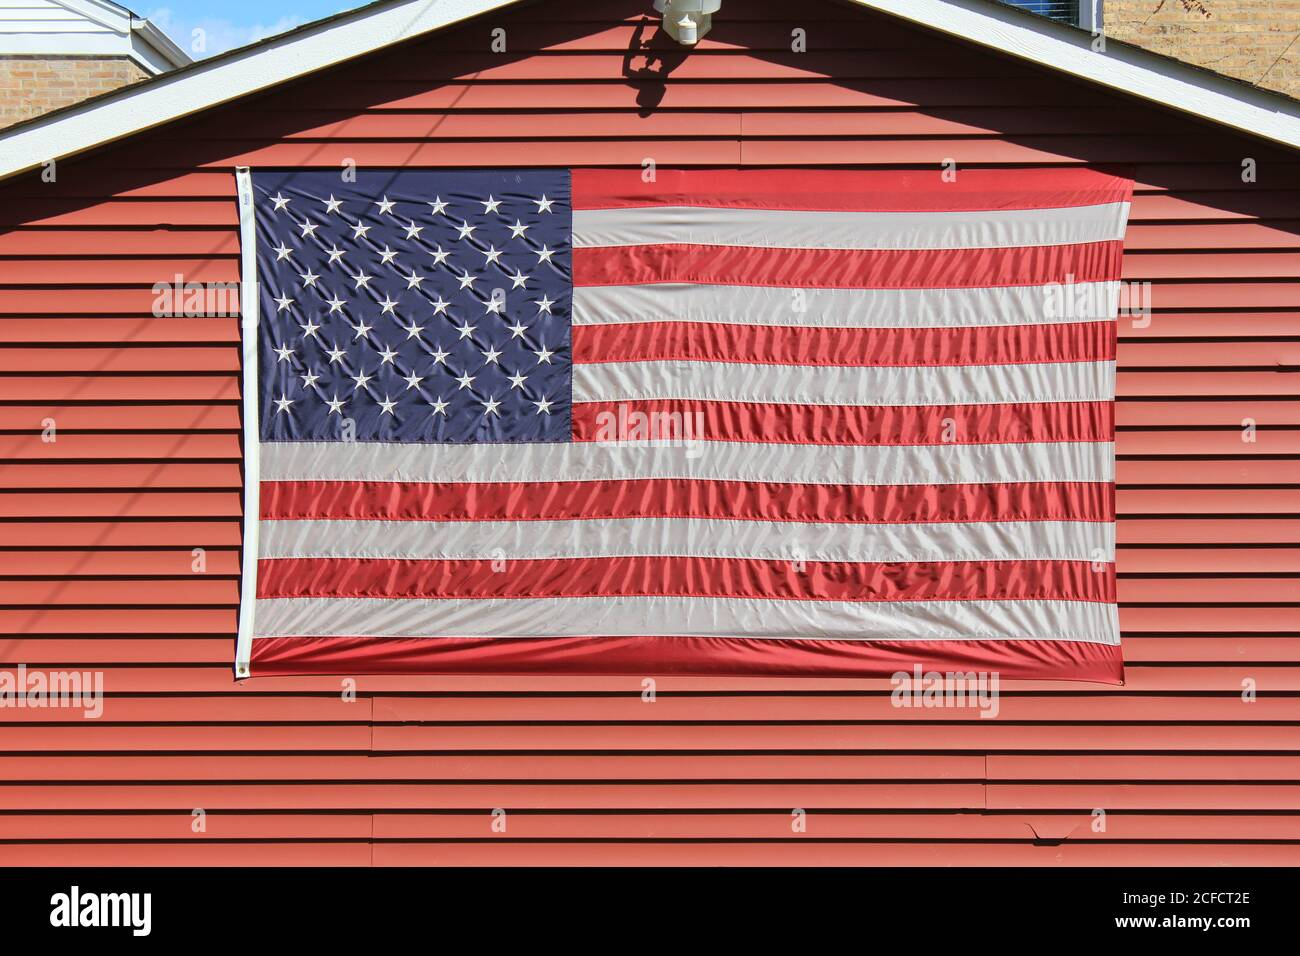 The American Flag on display at a private home at Oriole Park in Chicago, Illinois, USA. Stock Photo